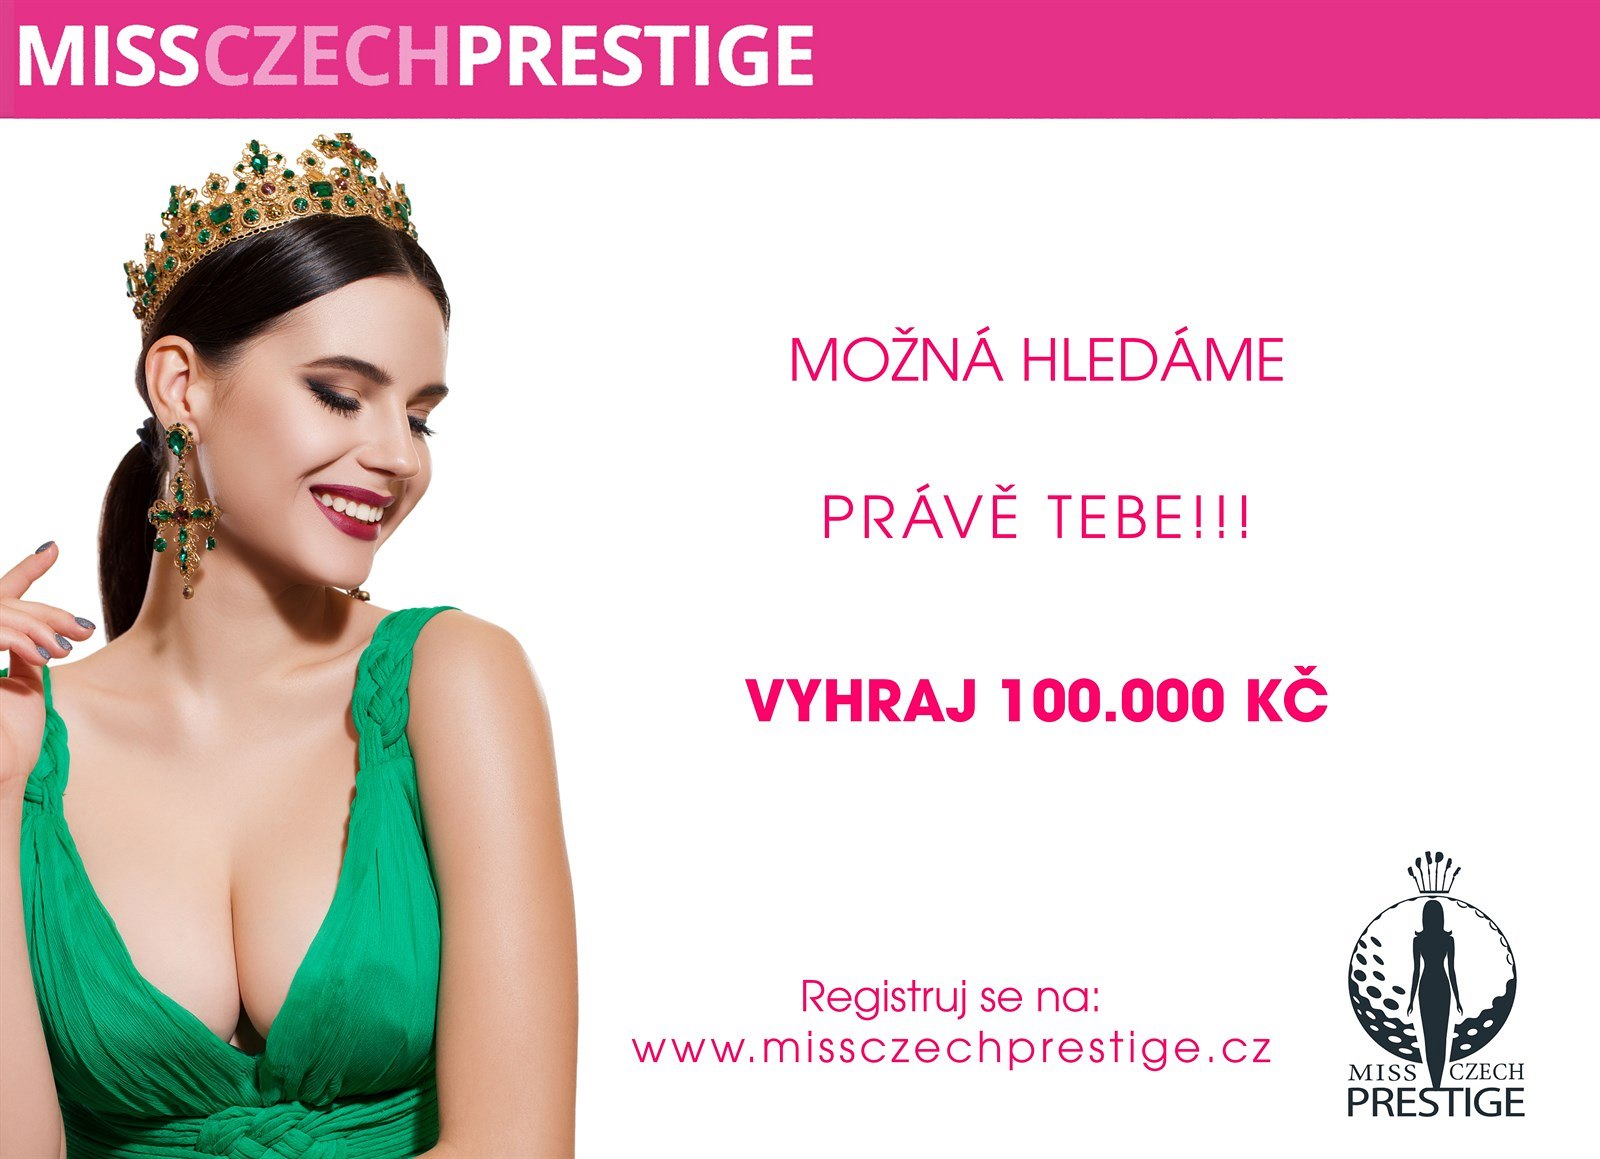 Miss Czech Prestige